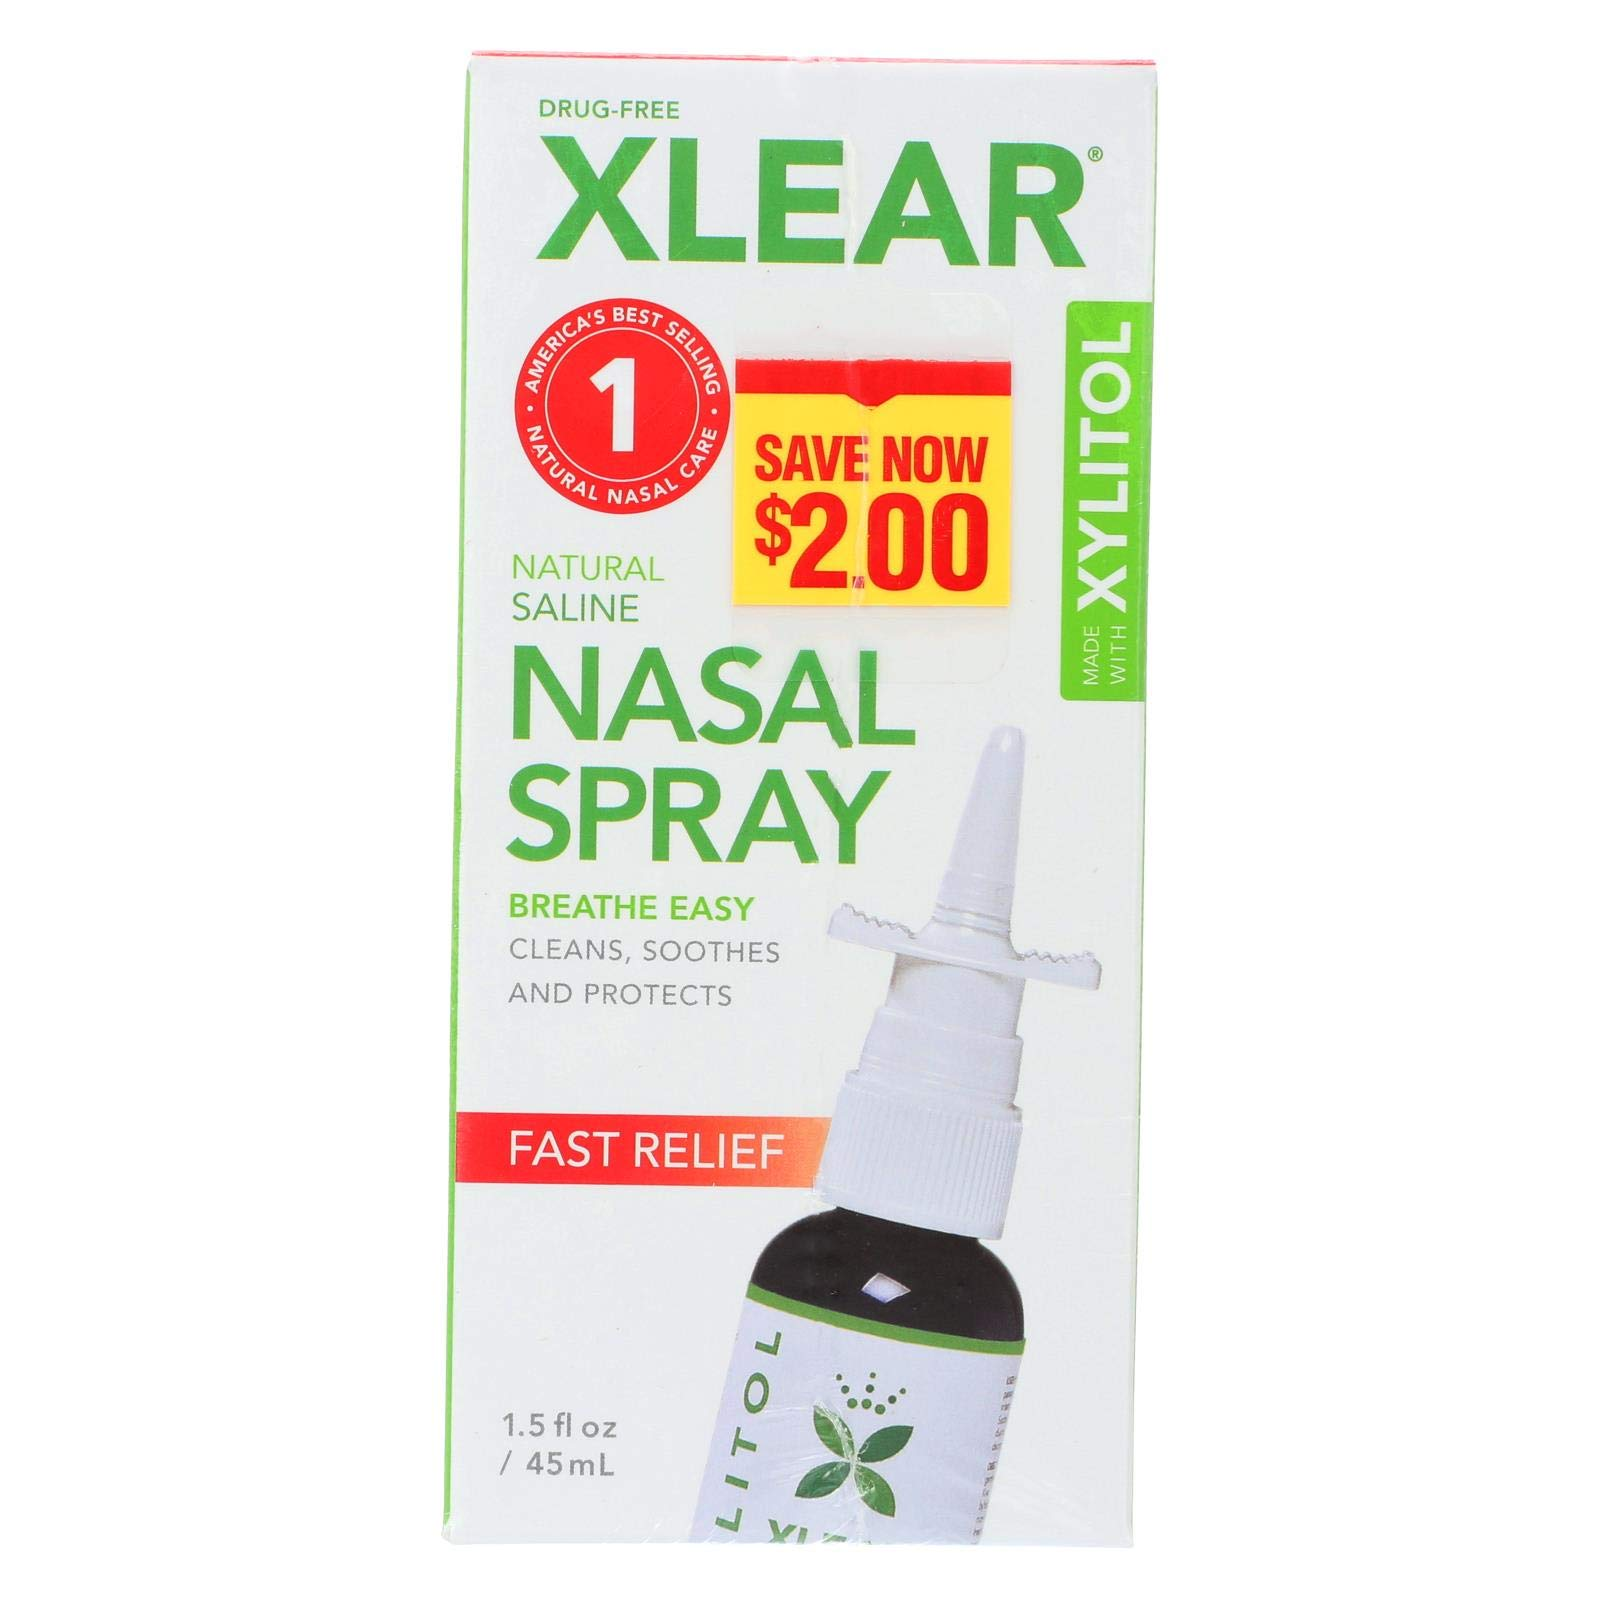 Xlear, Nasal Spray, Pack of 12, Size - 1.5 FZ, Quantity - 1 Case